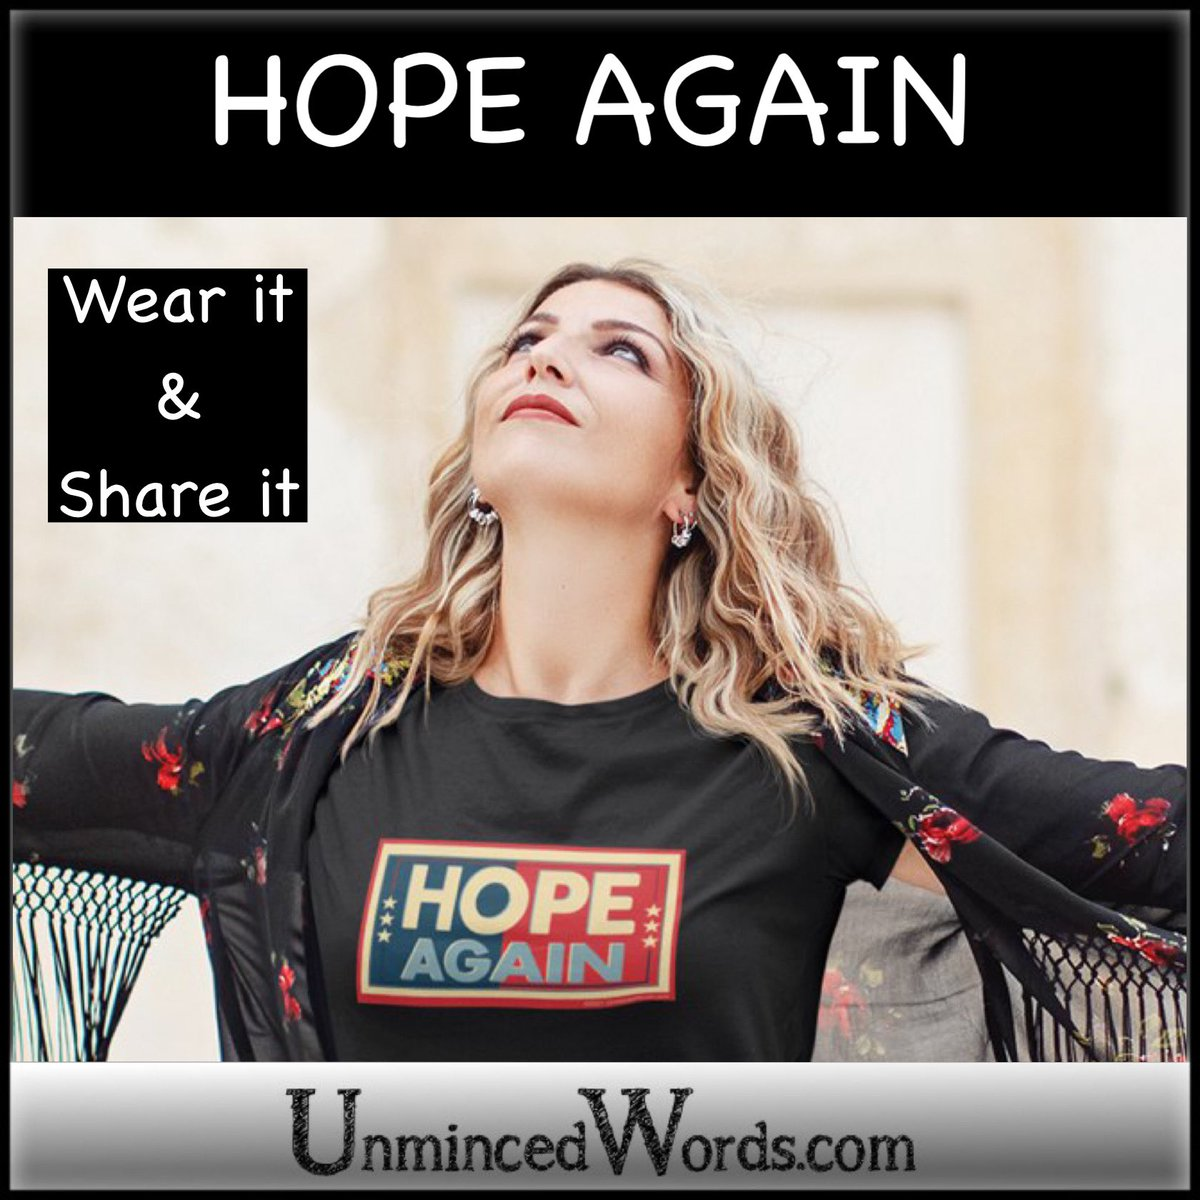 @NowunTrumped Speaking of Hope Again. We made this inspiring piece at  #HopeAgain #AfterTrump #LifeAfterTrump #PostTrumo